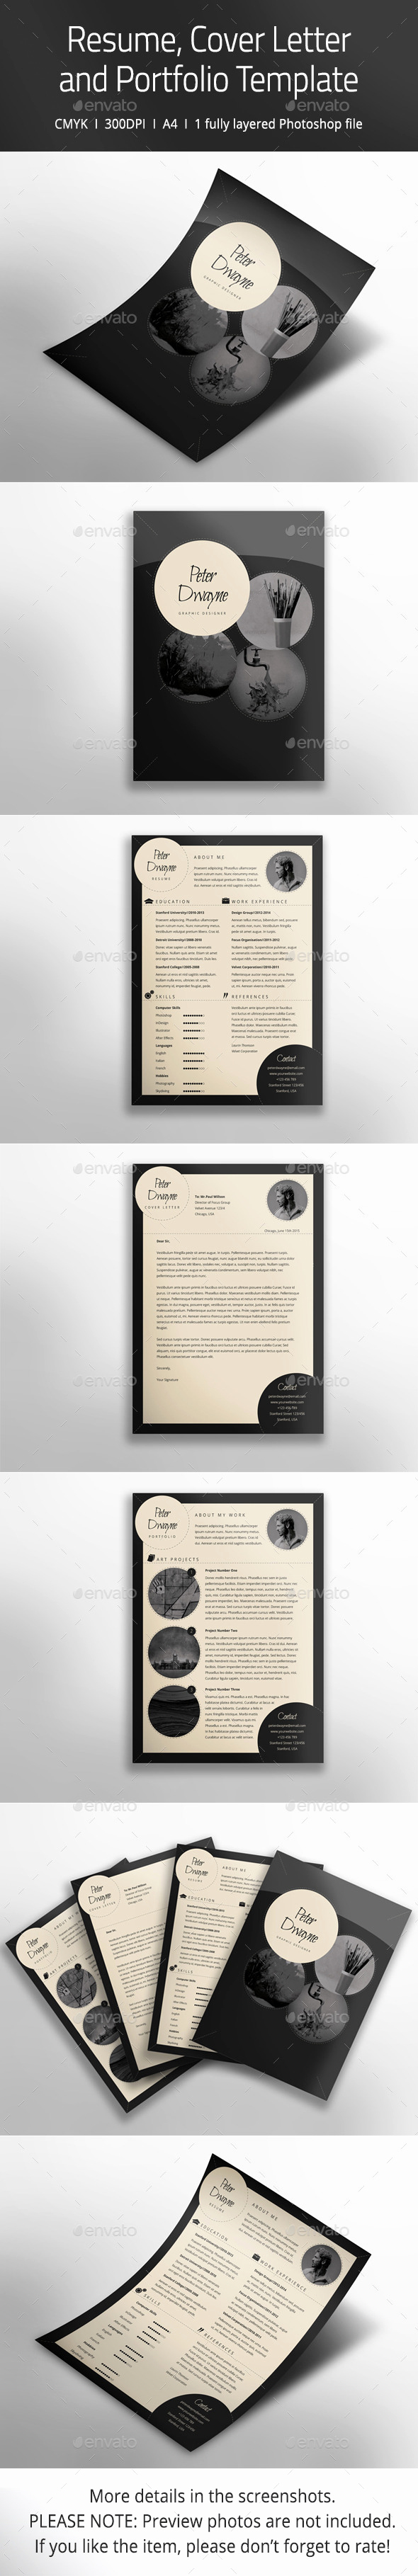 Portfolio Cover Page Template Lovely Resume Cover Letter and Portfolio Template by